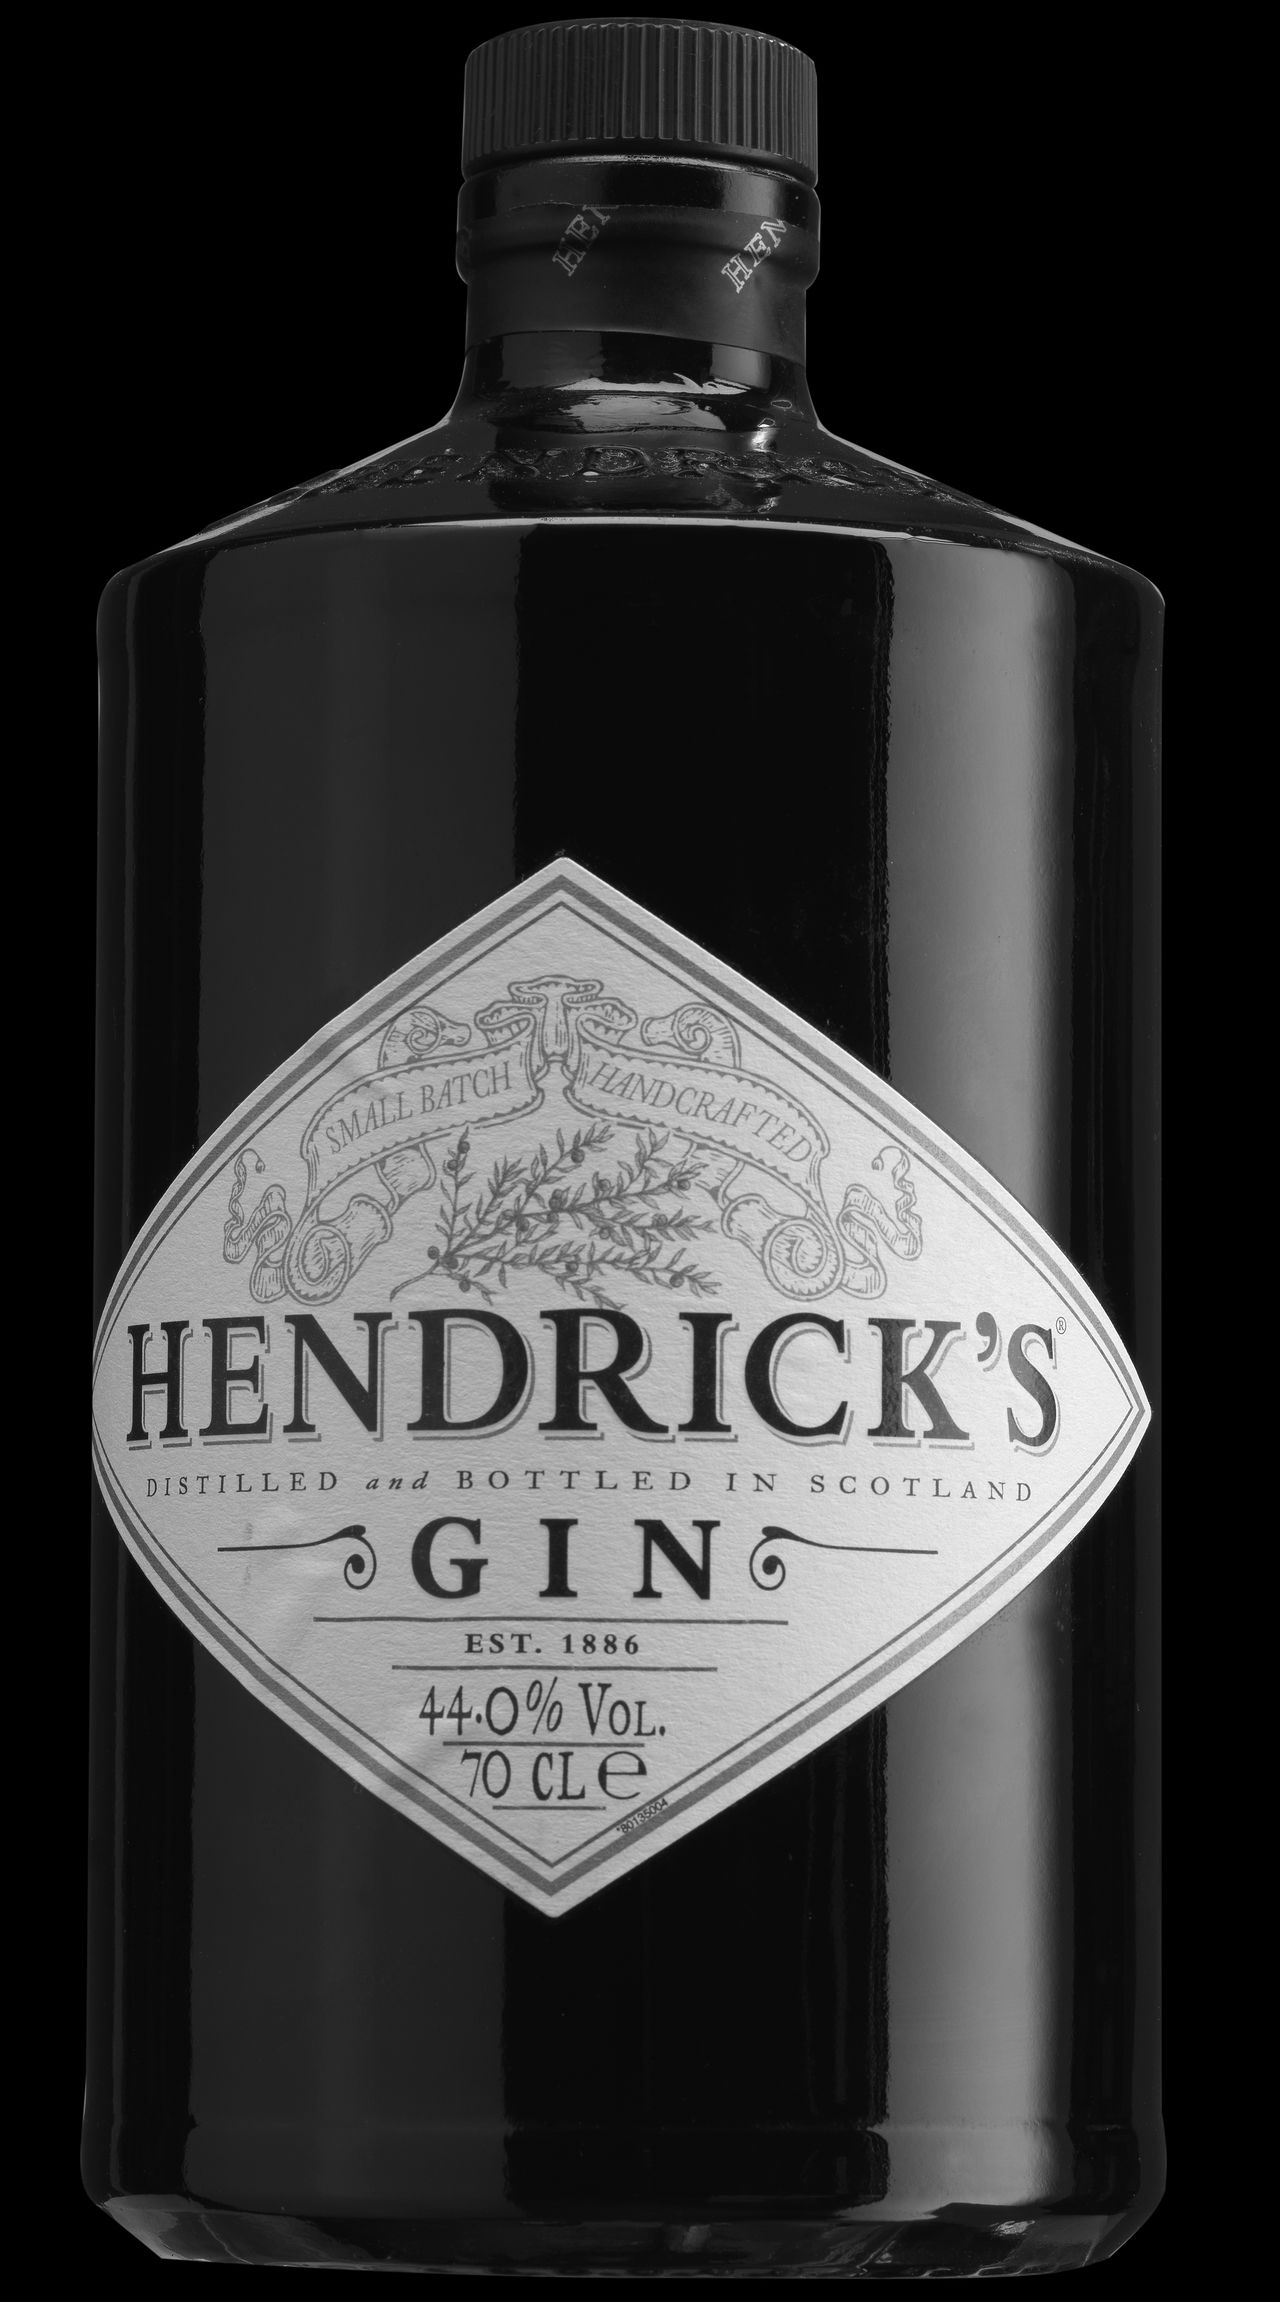 Gin Tonic Drink Label Studio Shot Alcohol Black Background No People Studiophotography Hendricks